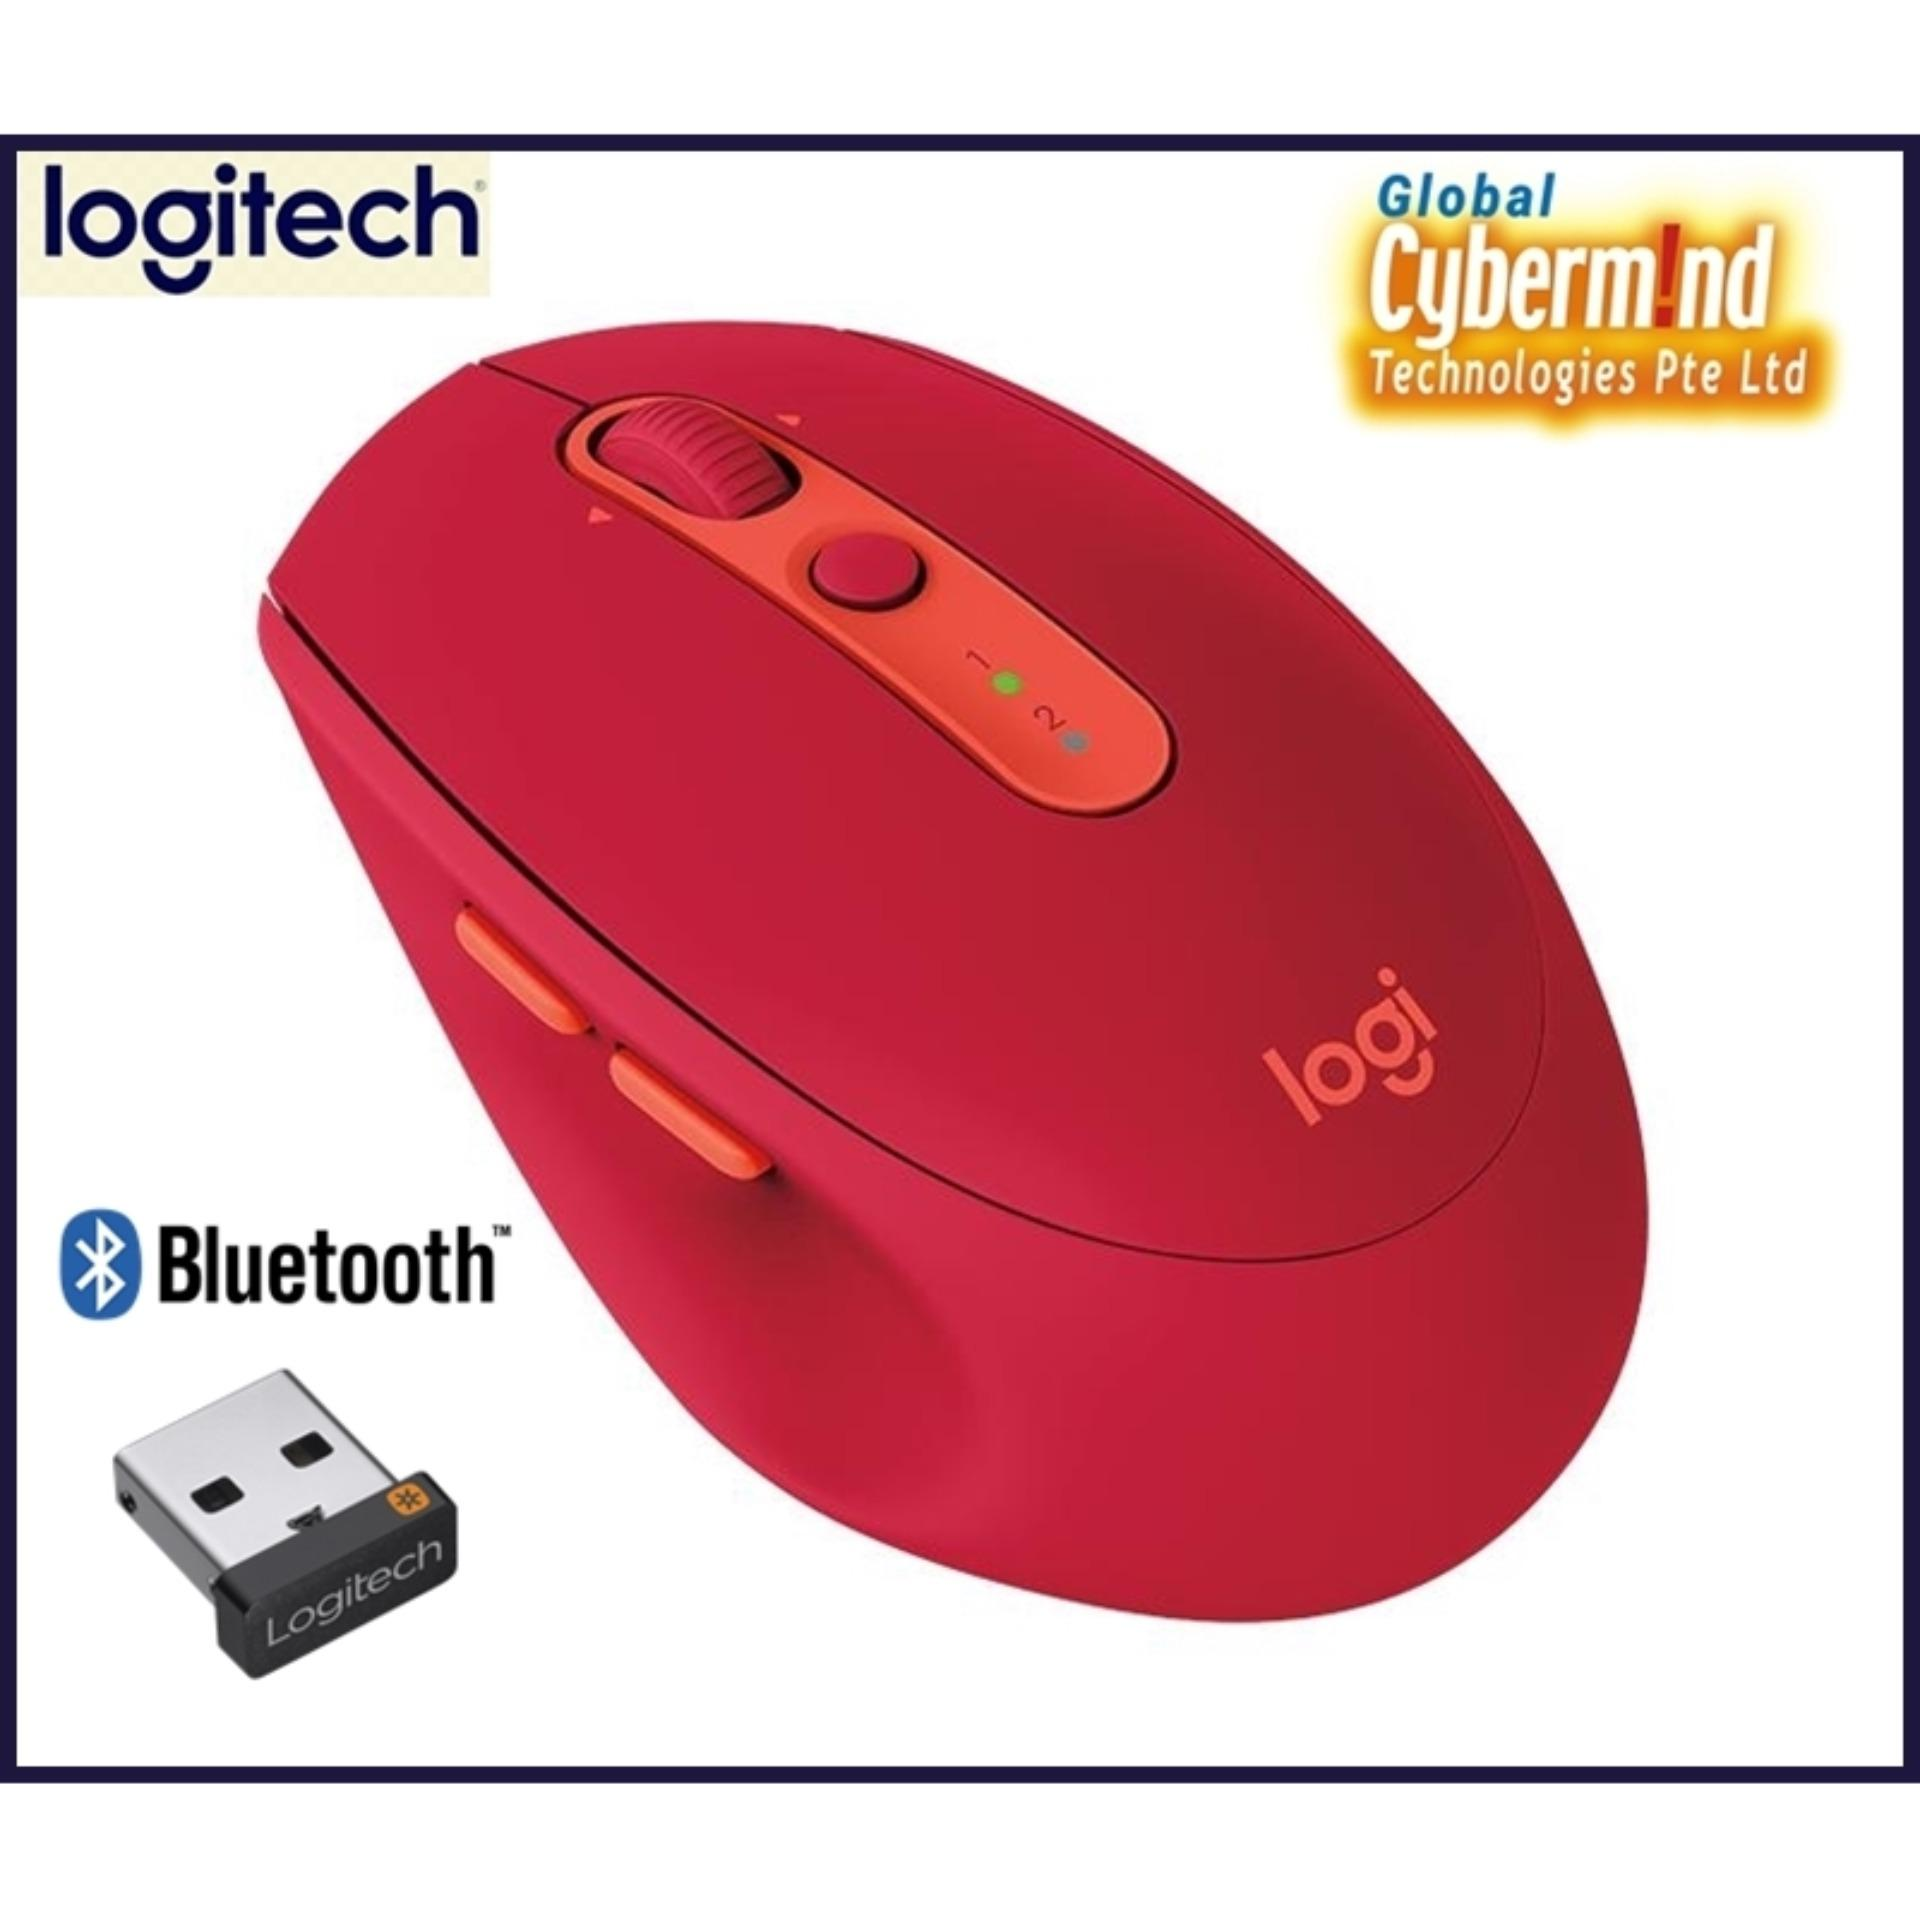 Logitech M590 Multi-Device Silent Wireless Mouse With Logitech Flow (choice of color : Ruby / Mid Grey Tonal / Graphite Tonal) (Local Distributor Stocks)